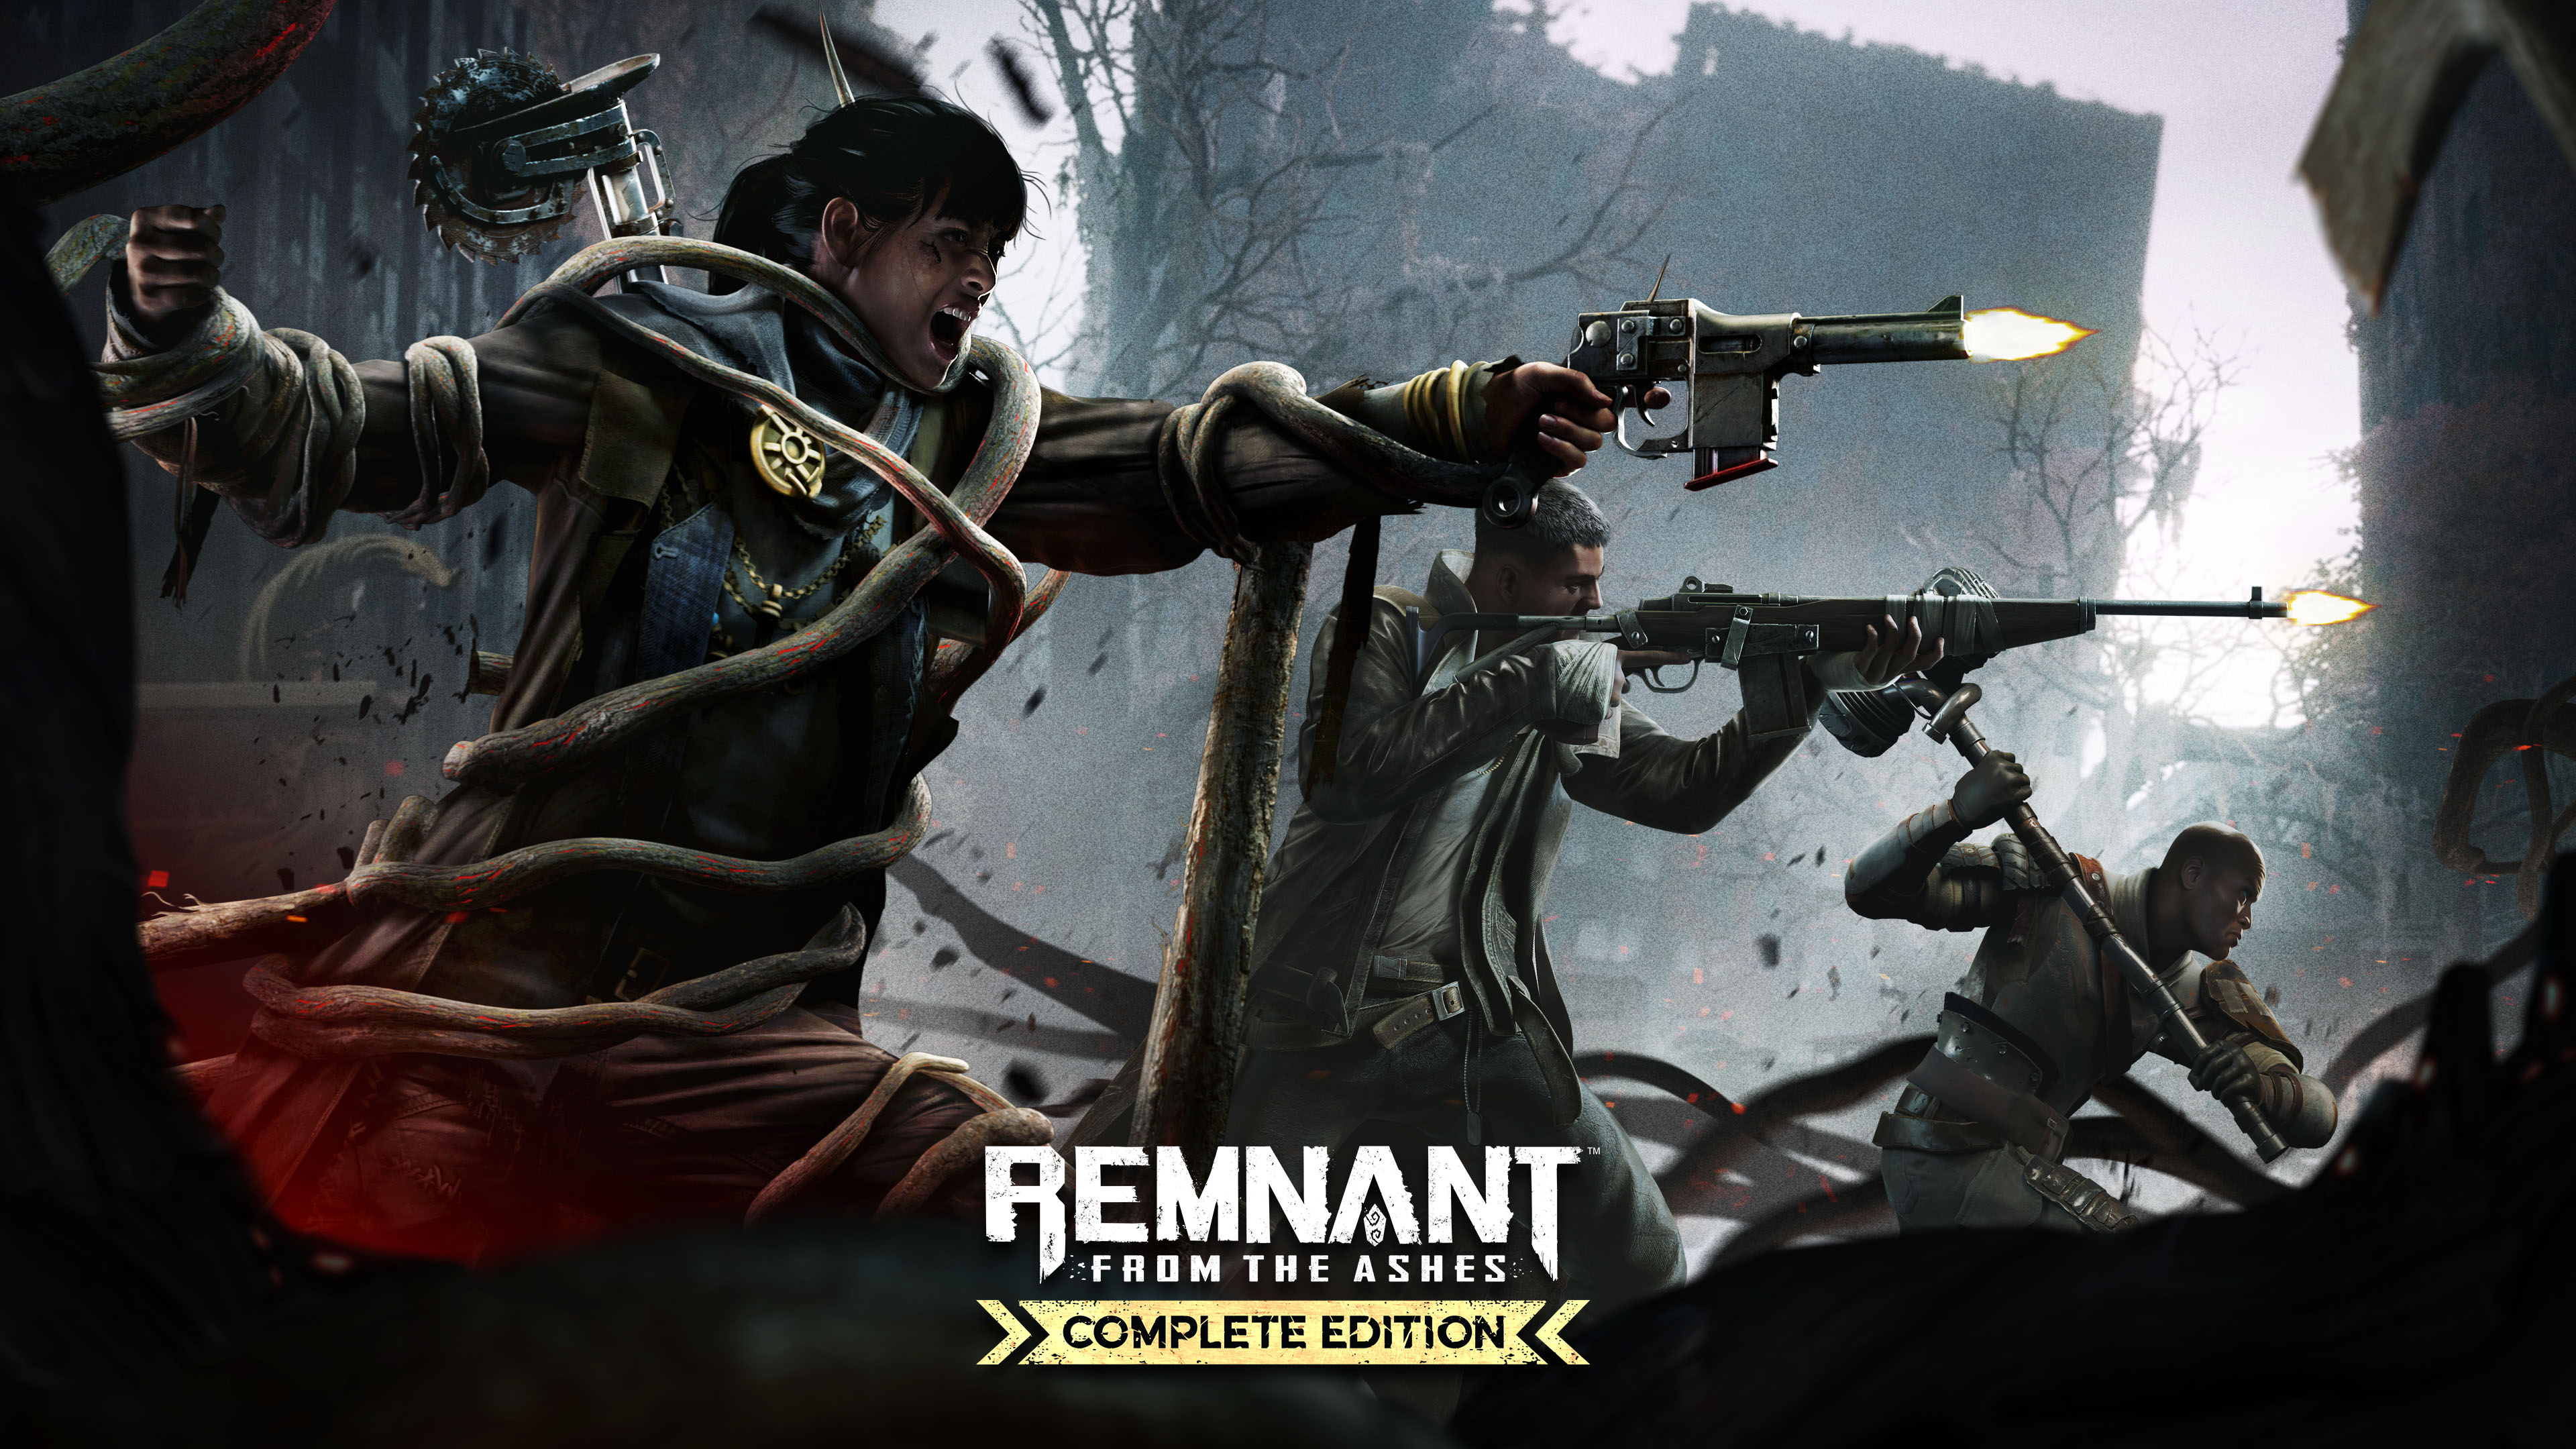 Remnant: From the Ashes – Complete Edition